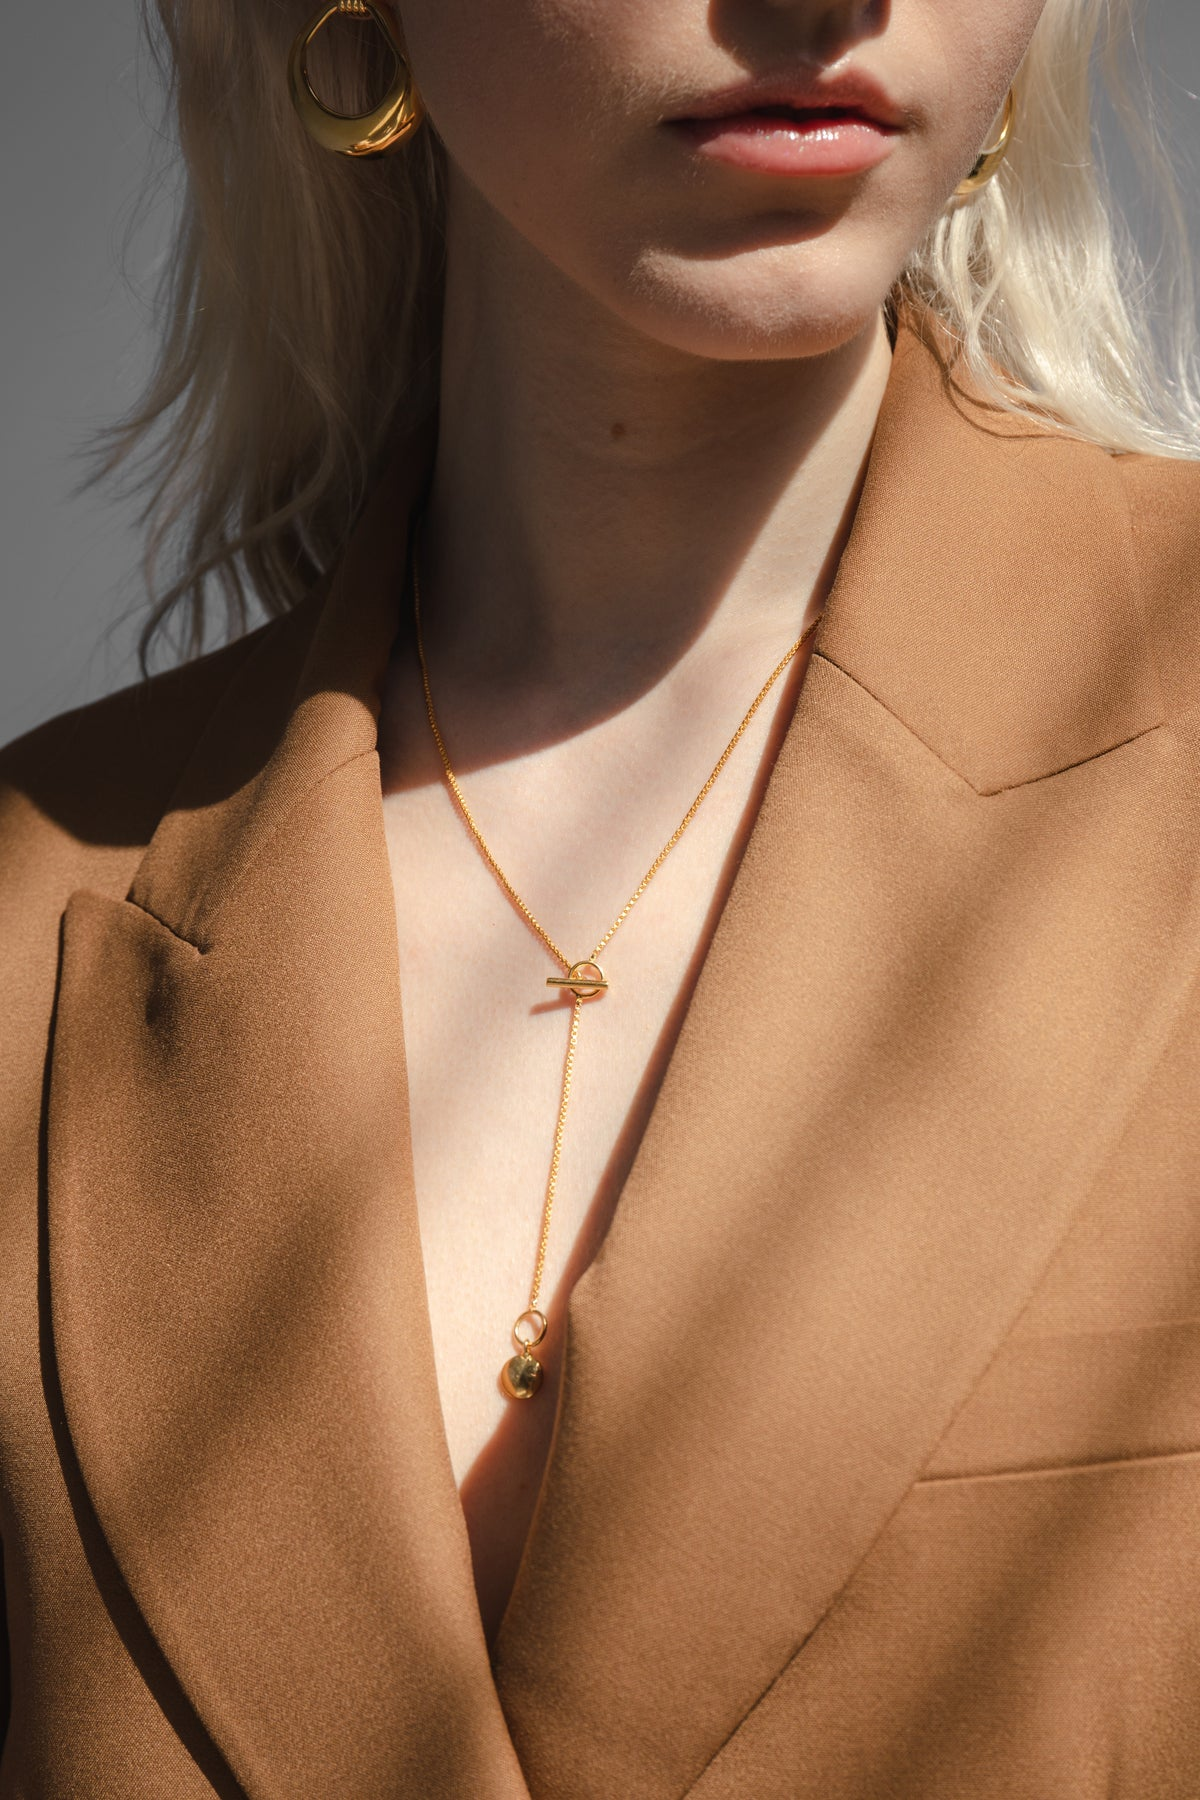 Girl wearing the Flash Jewellery Eva necklace available on Maker's Mrkt Makers Market Melbourne 18ct gold